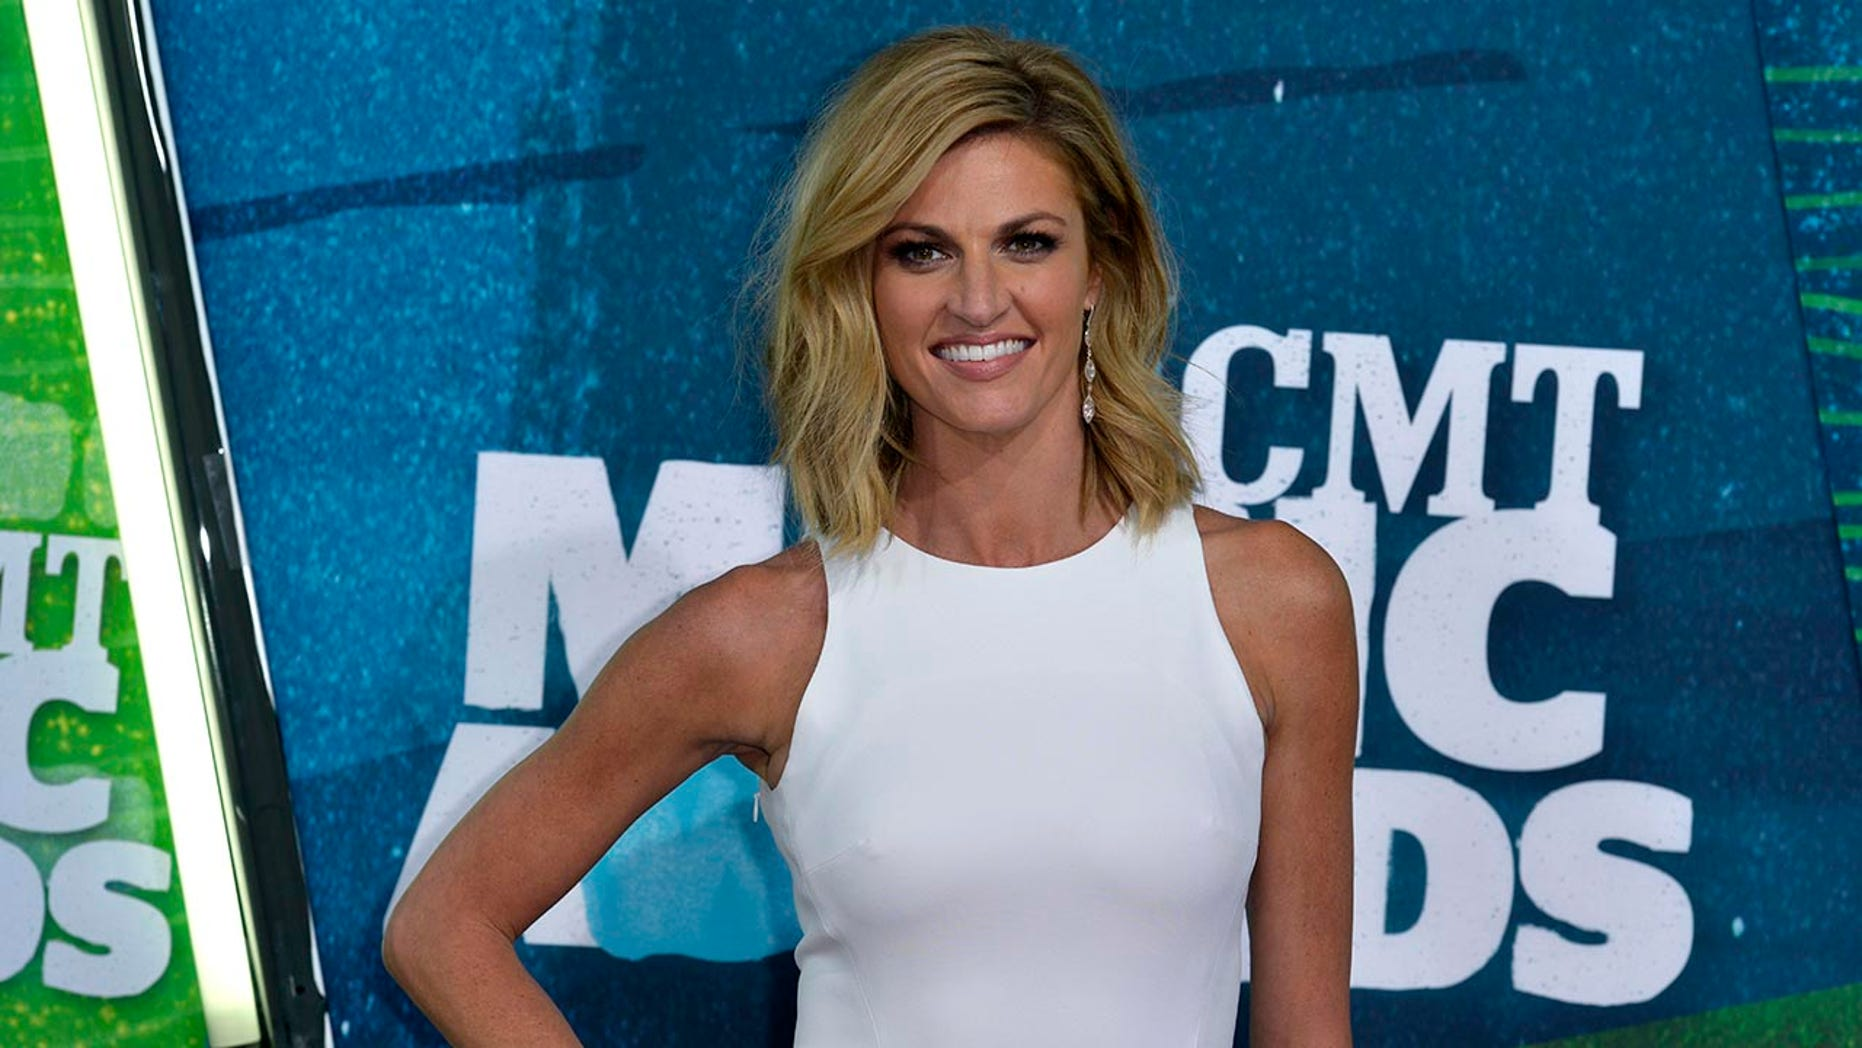 Erin Andrews goes through three outfits in one game.